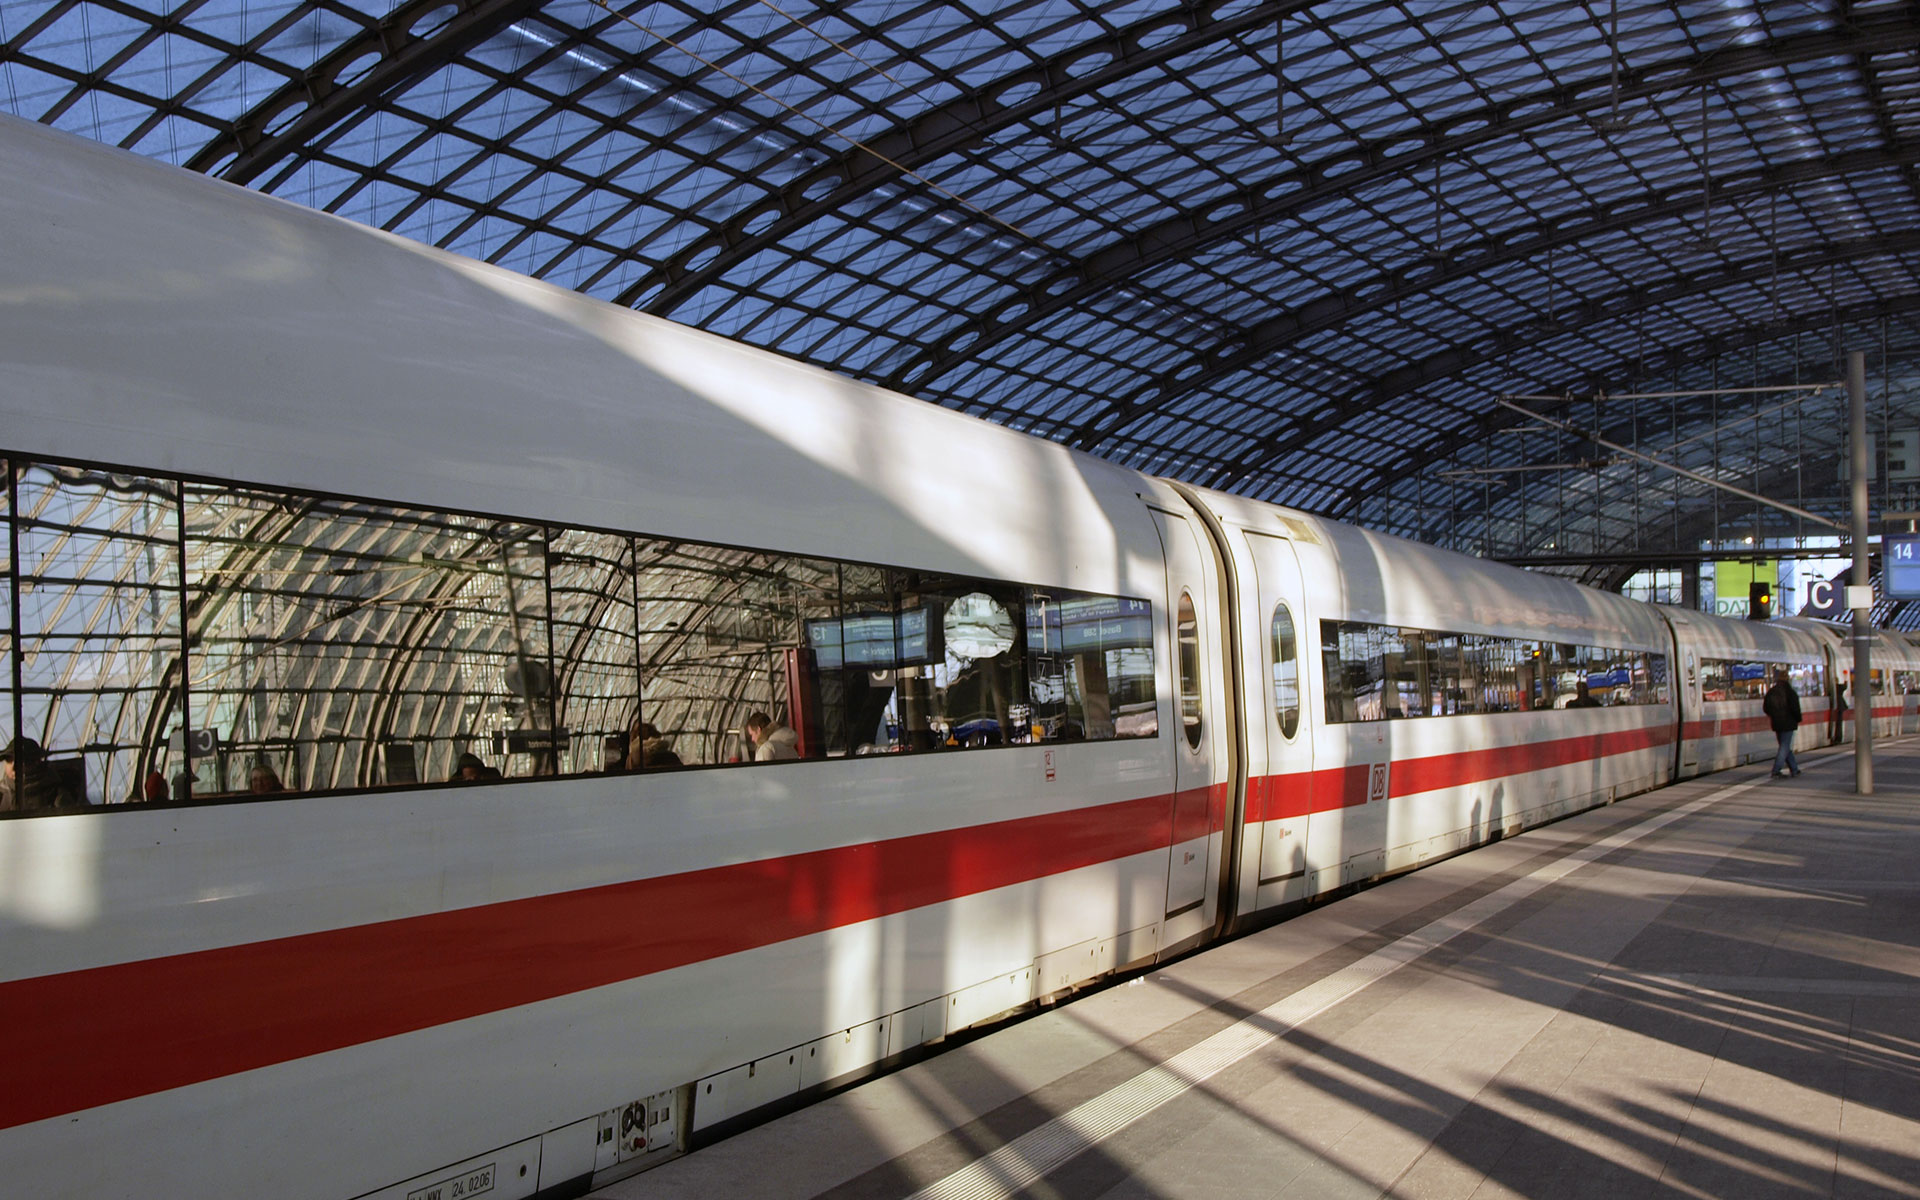 A Deutsche Bahn (DB) ICE train at Berlin Hauptbahnhof (photo © hidden europe).